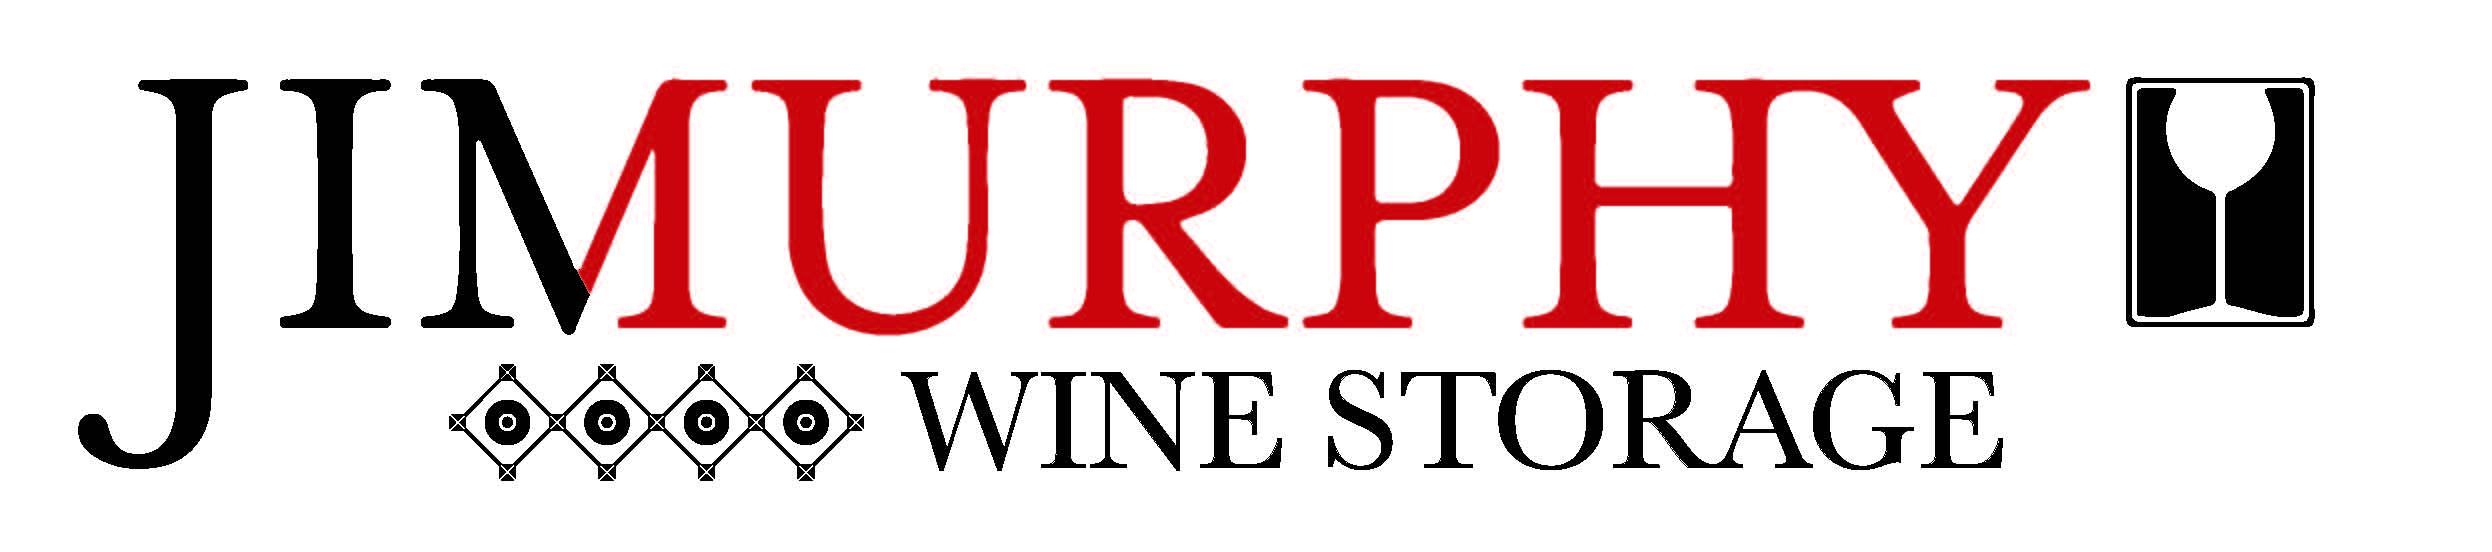 Jim Murphy Wine Storage